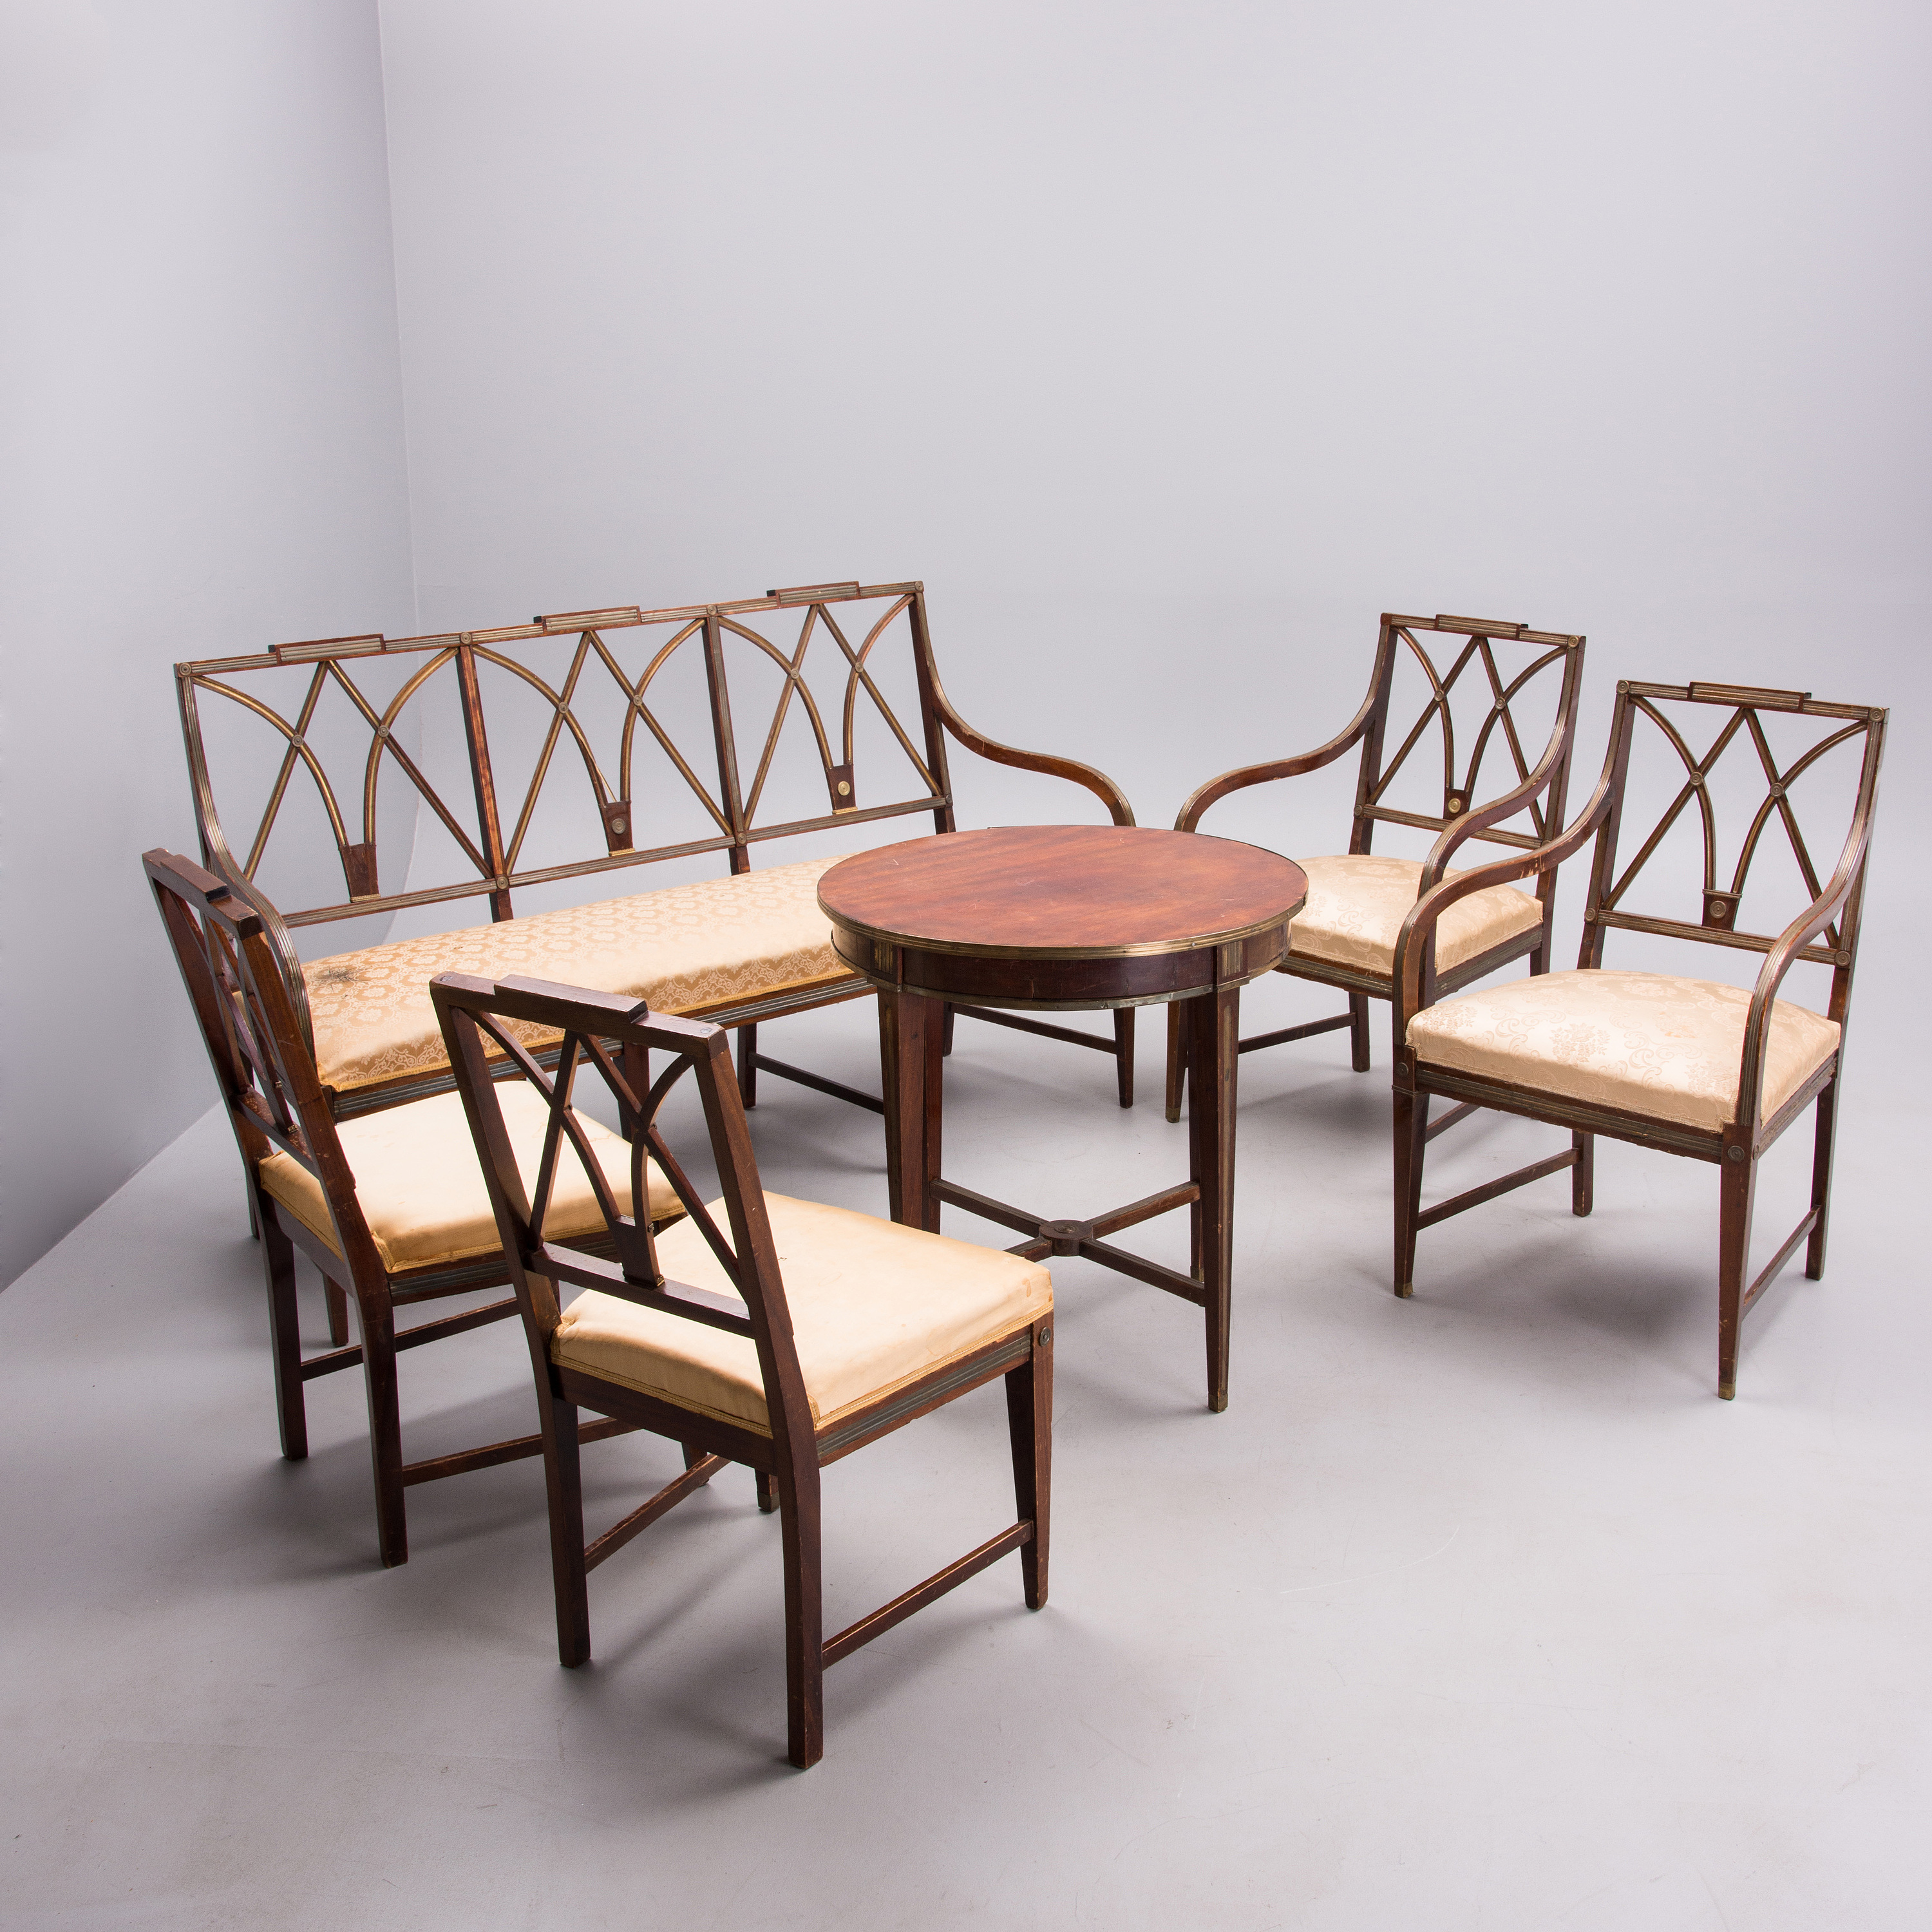 Merveilleux A SET OF RUSSIAN FURNITURE 6 PIECES, Jacob Style Late 19th Century.    Bukowskis